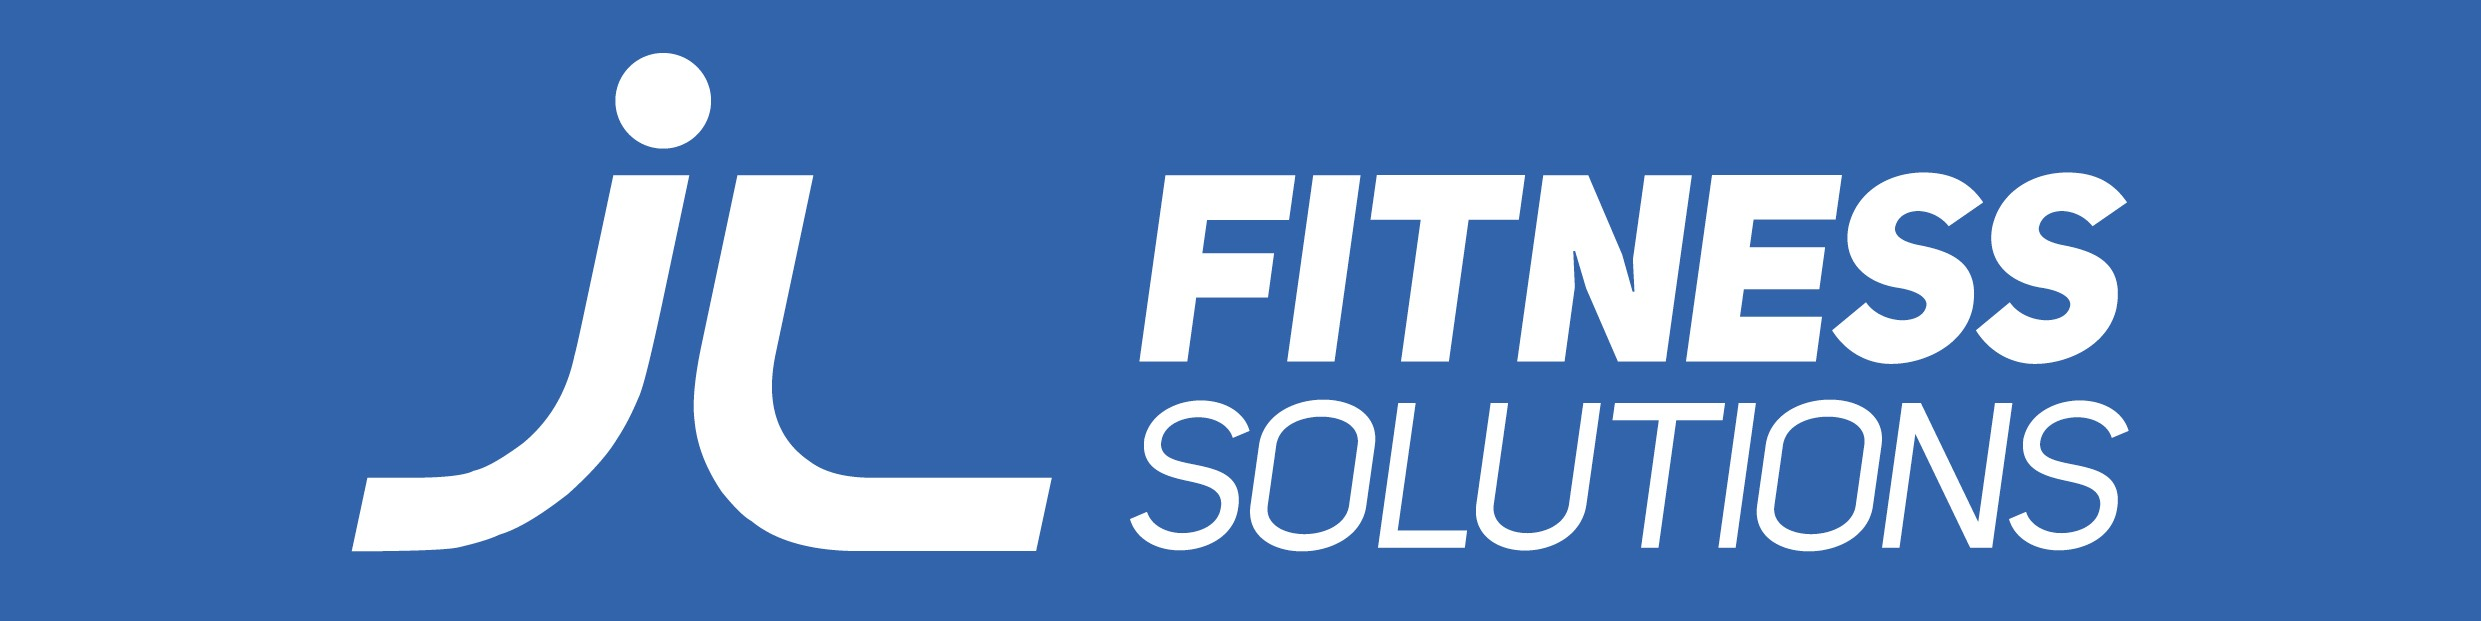 JL Fitness Solutions